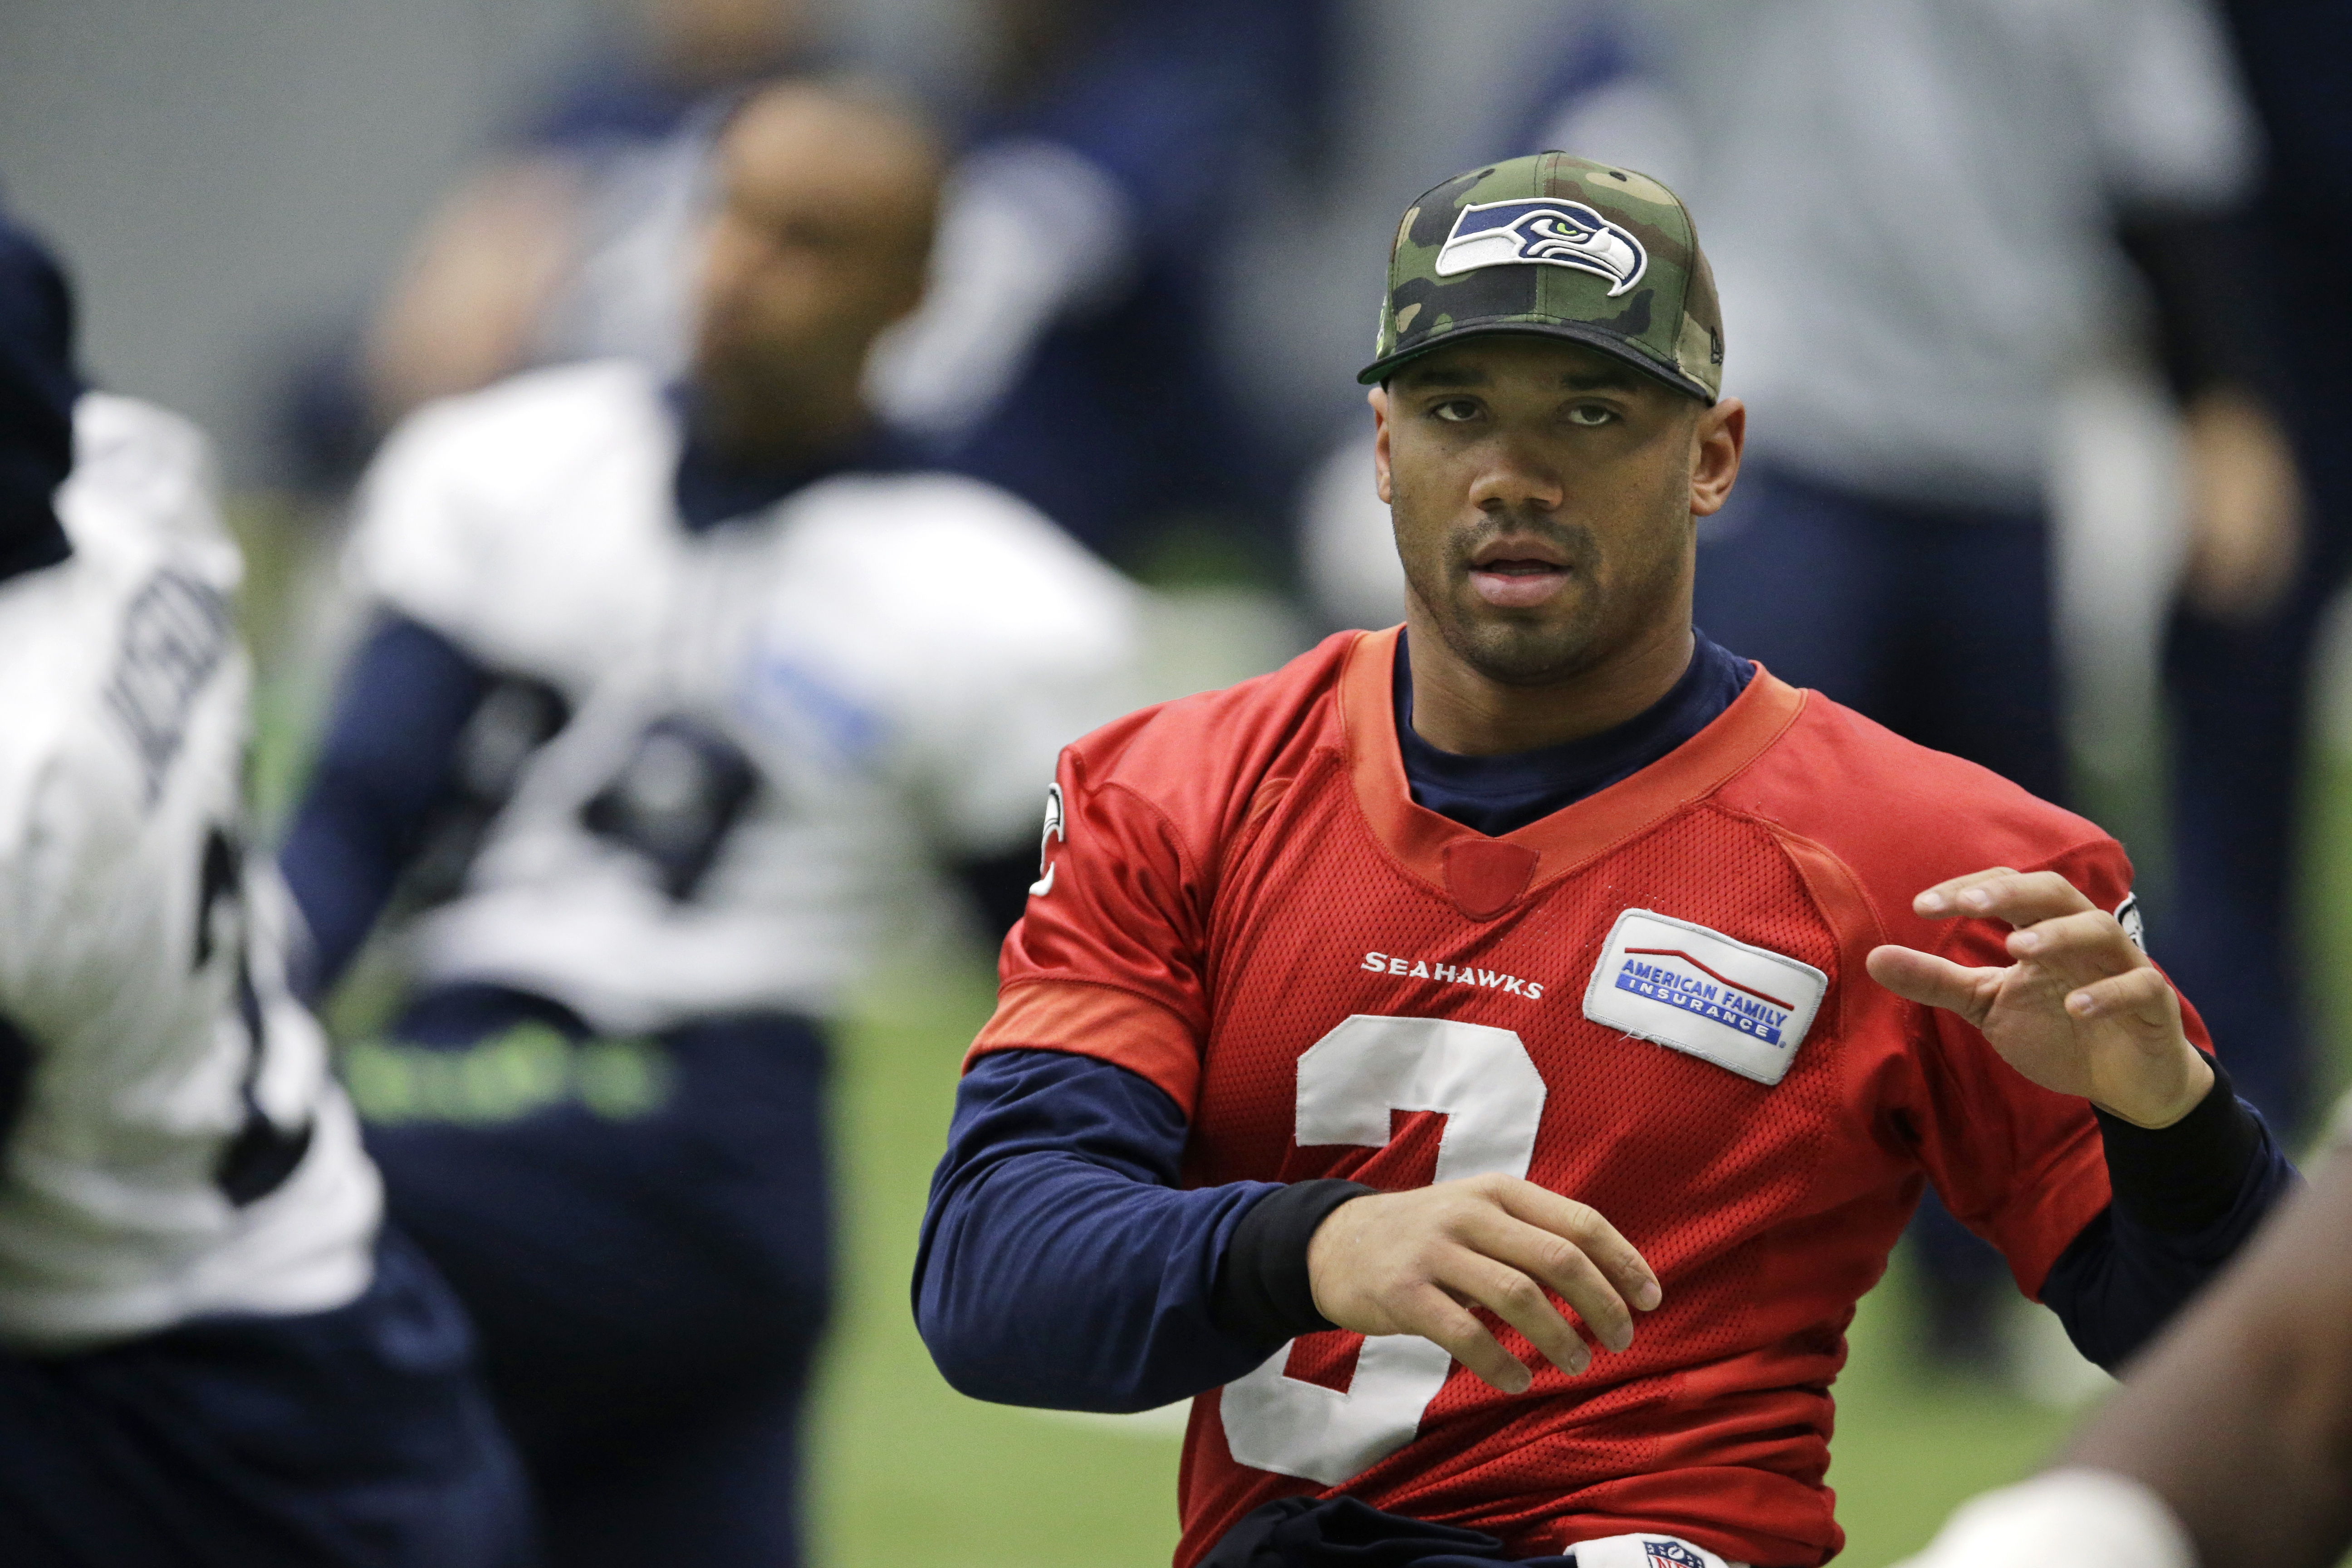 Seattle Seahawks quarterback Russell Wilson warms up before NFL football practice, Wednesday, Jan. 6, 2016, in Renton, Wash. (AP Photo/Ted S. Warren)